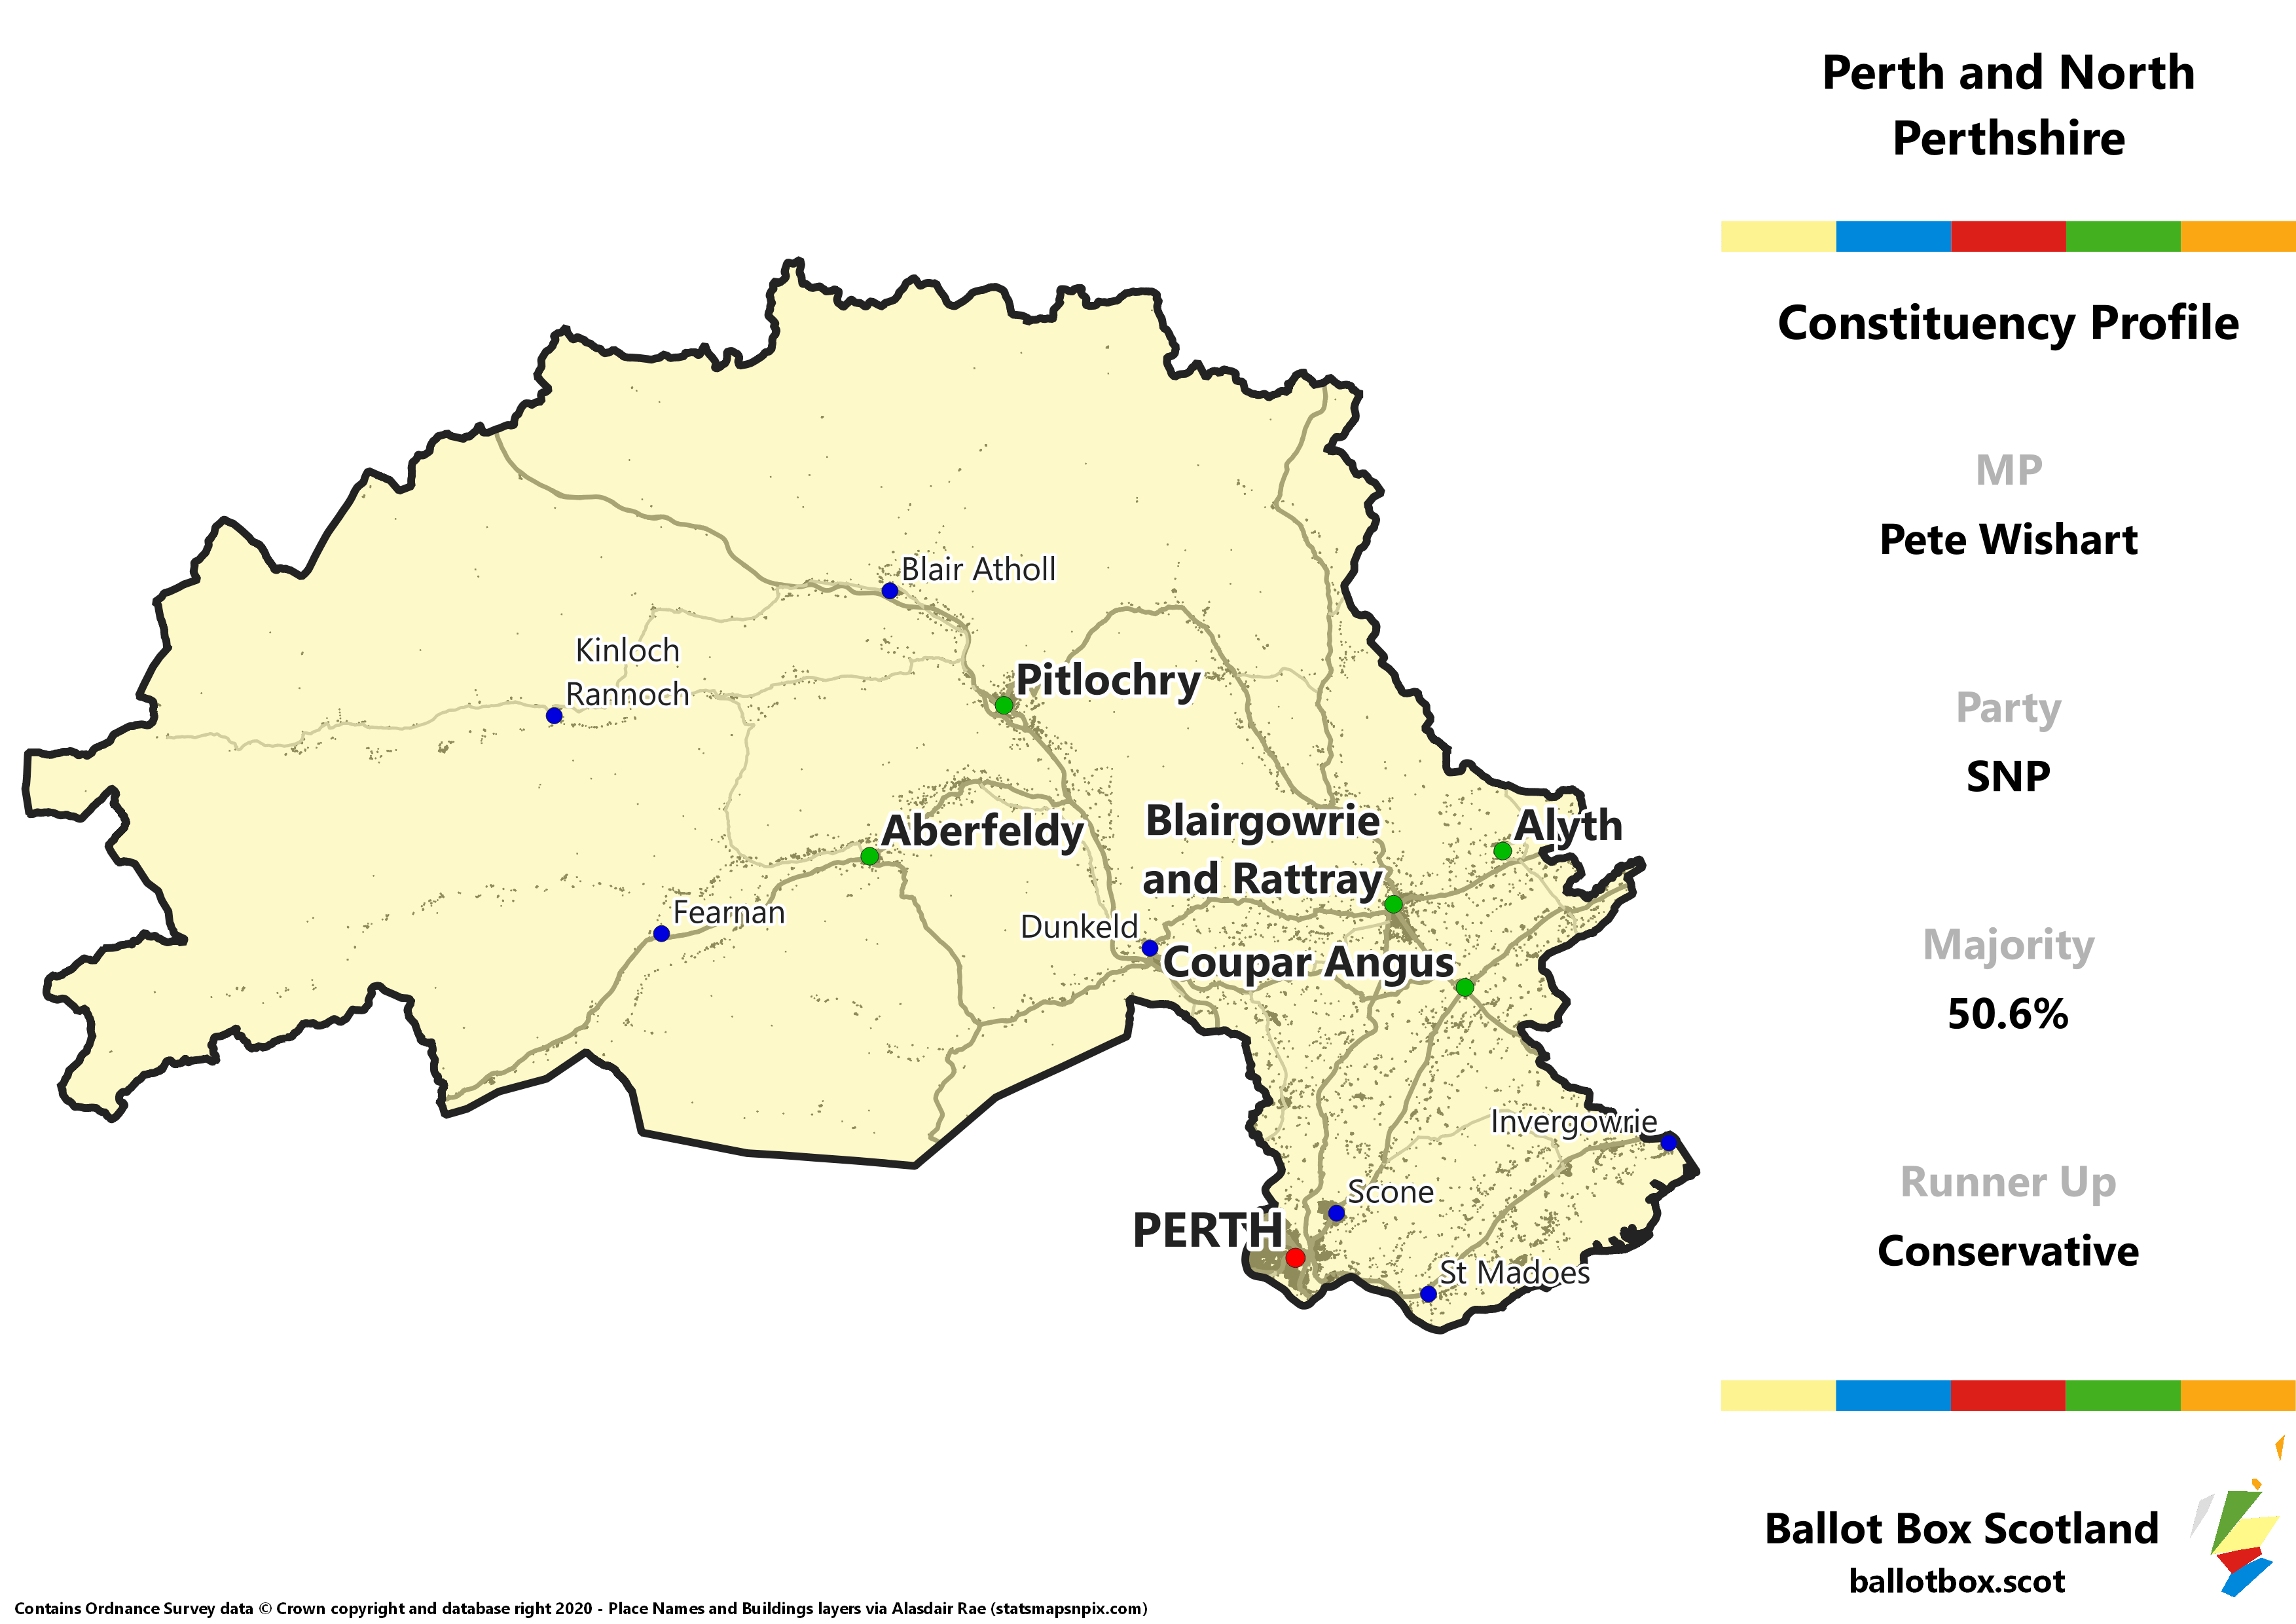 Perth and North Perthshire Constituency Map